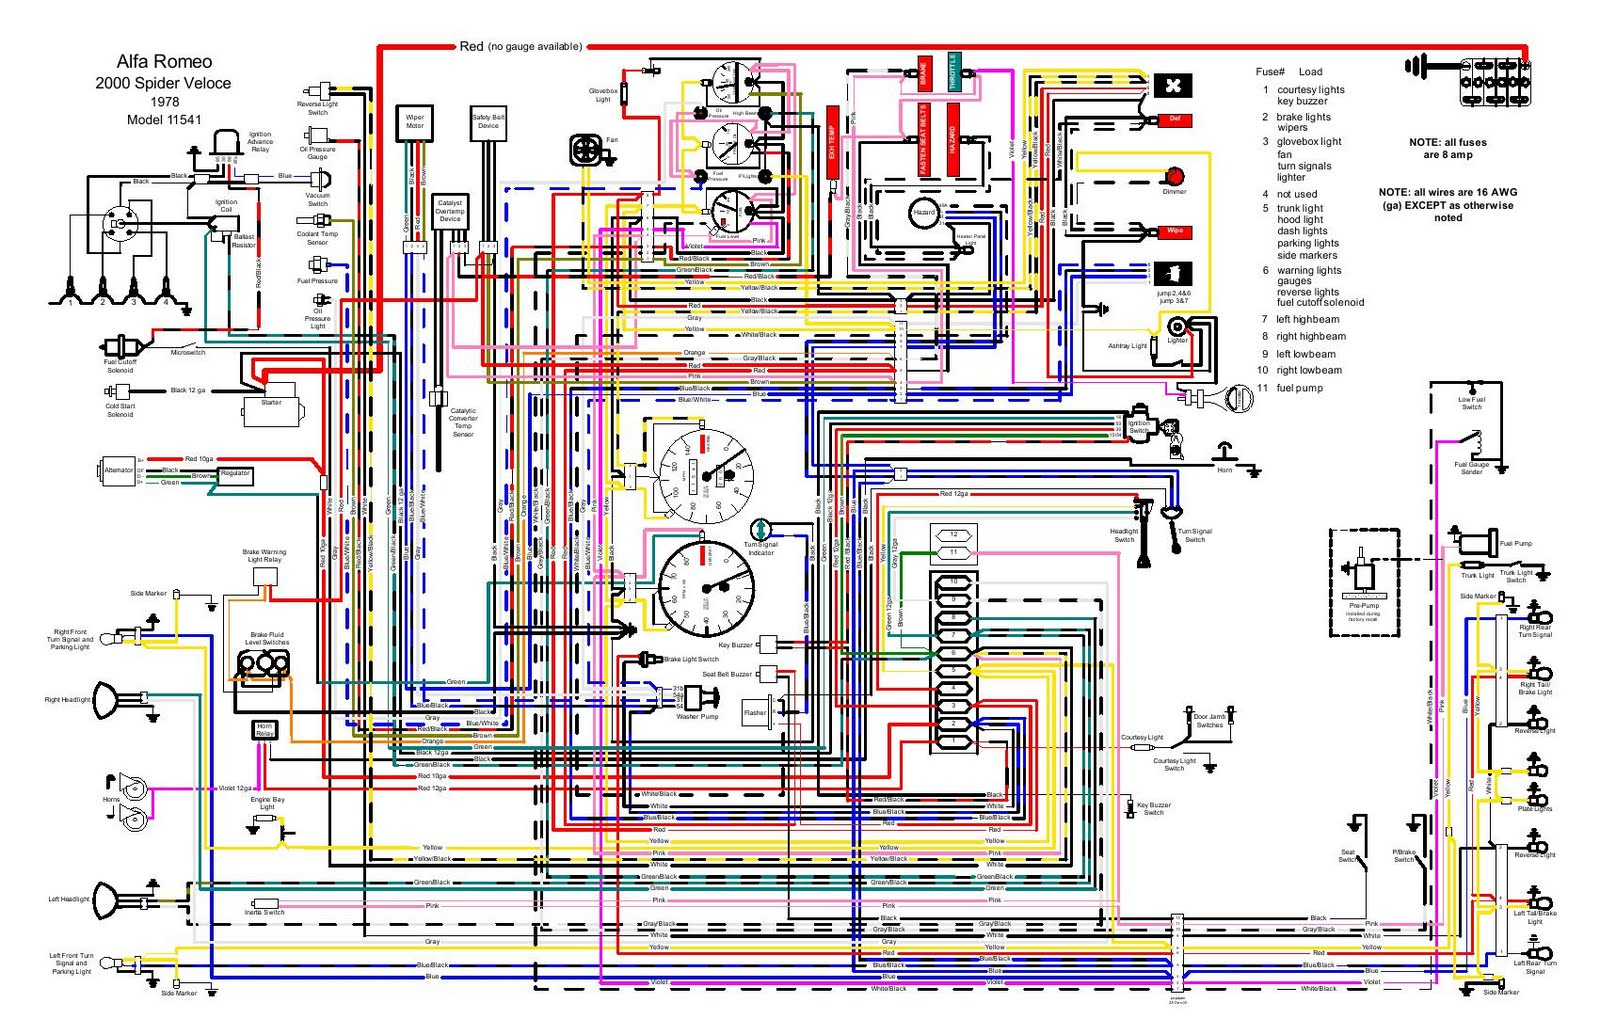 1978_Alfa_Romeo_2000_Spider_Wiring  Ford Ac Wiring Diagram on alternator electrical, fairlane alternator, mustang turn signal,